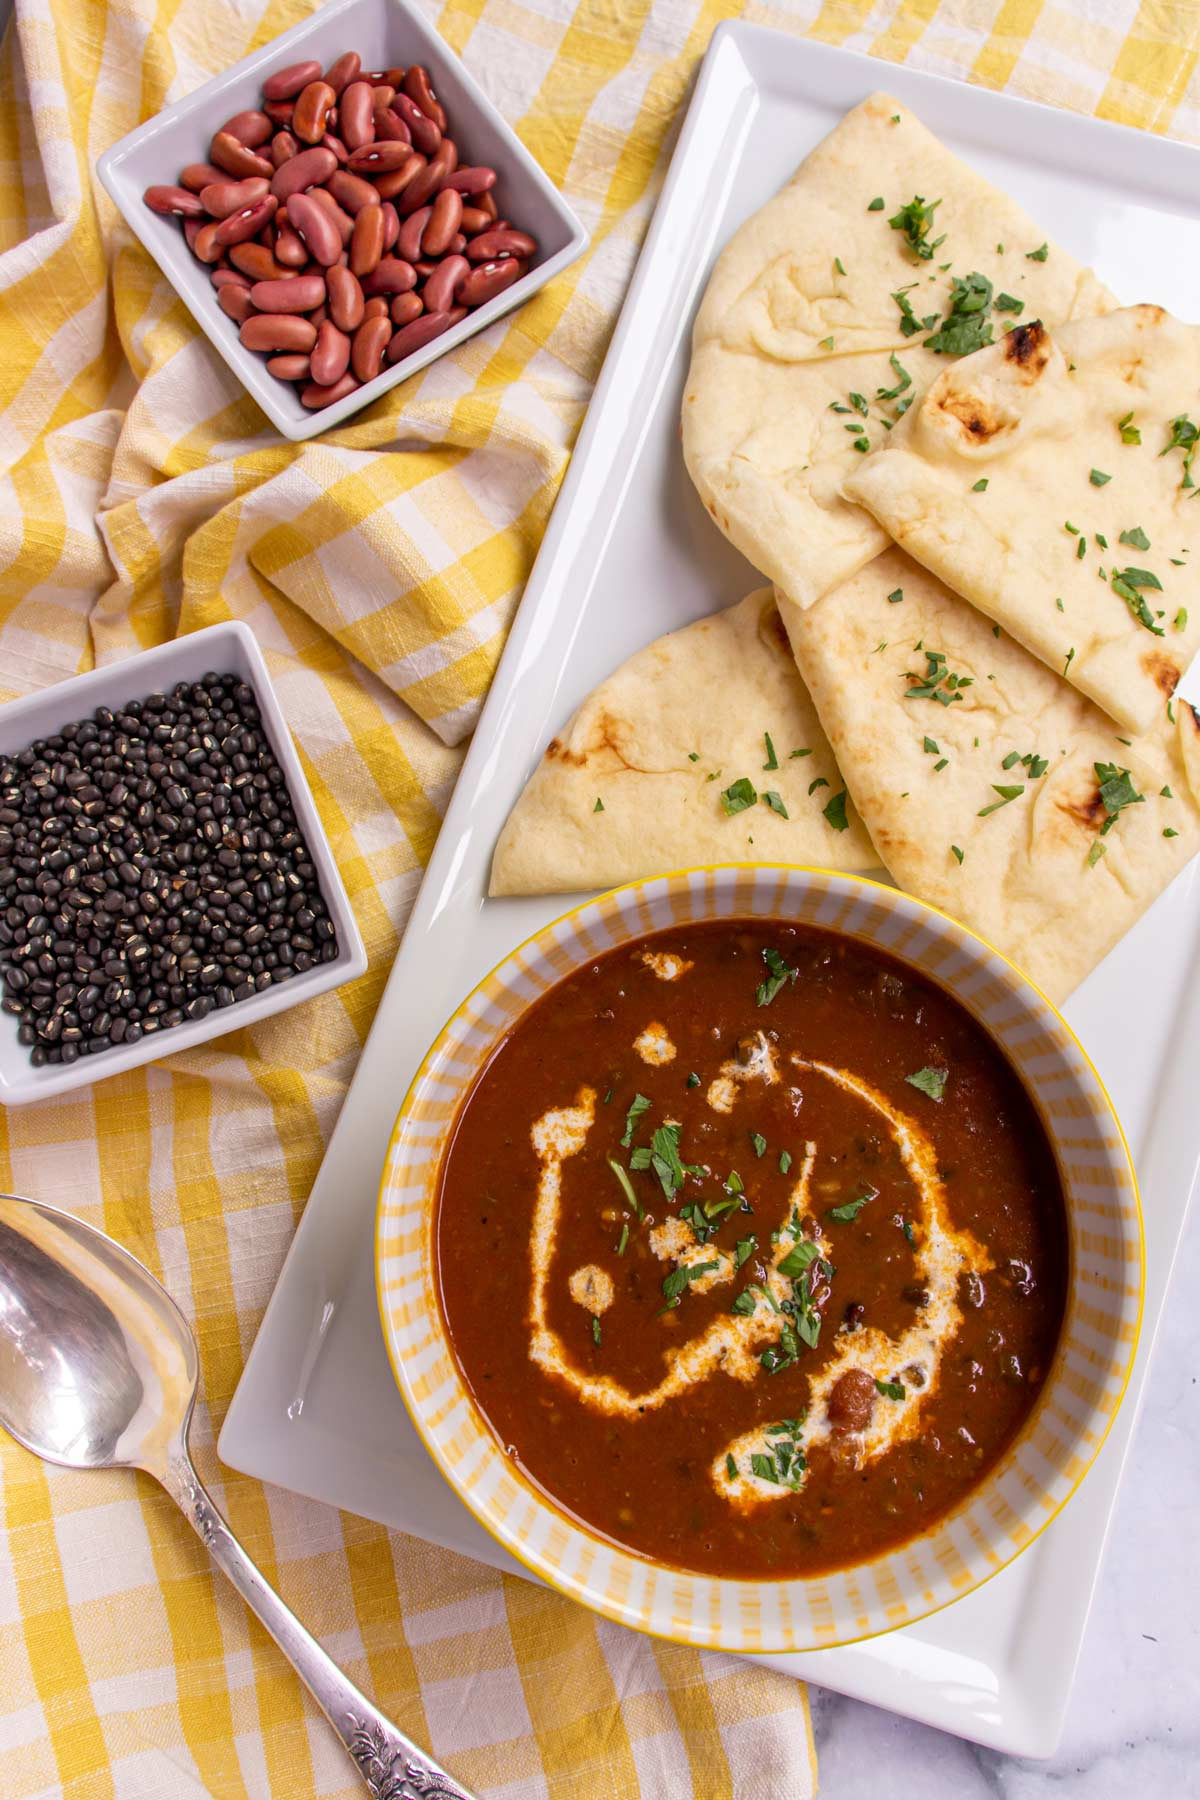 A bowl of brown curry, naan bread, bowls of dry lentils and beans, and a spoon.